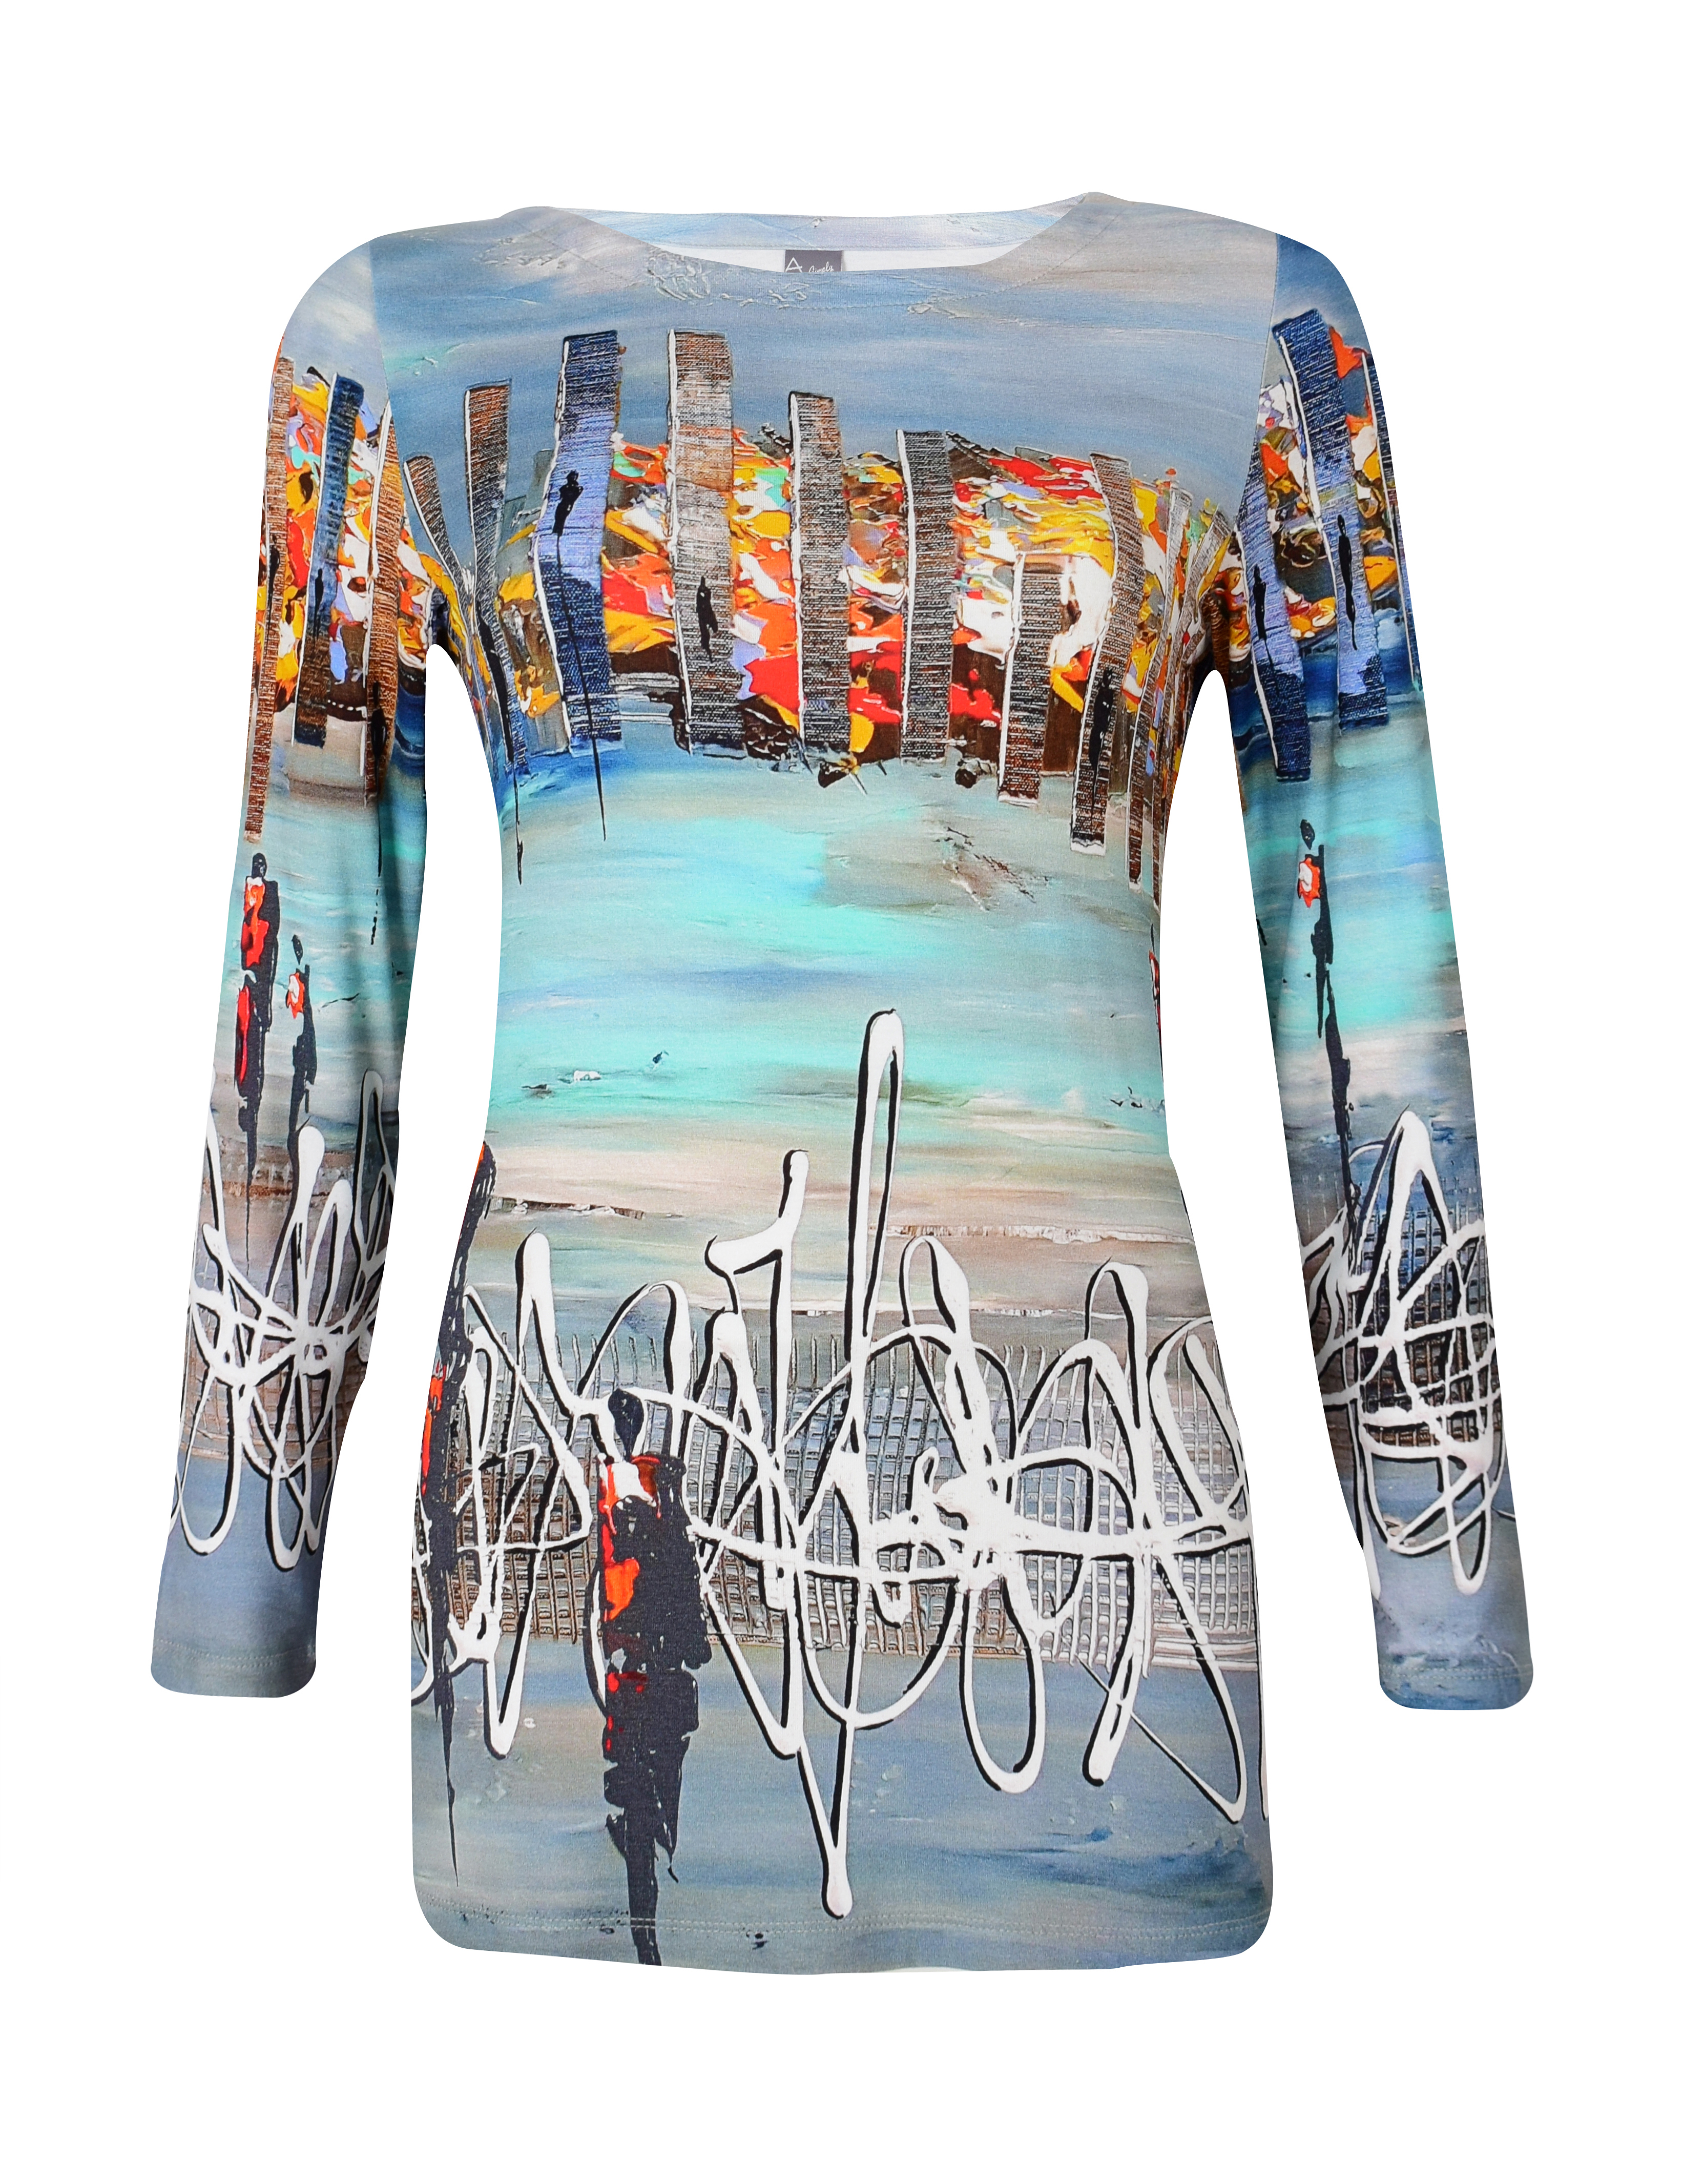 Simply Art Dolcezza: Indeed A Picture Perfect Beach Abstract Art Tunic (1 Left!) Dolcezza_SimplyArt_59671